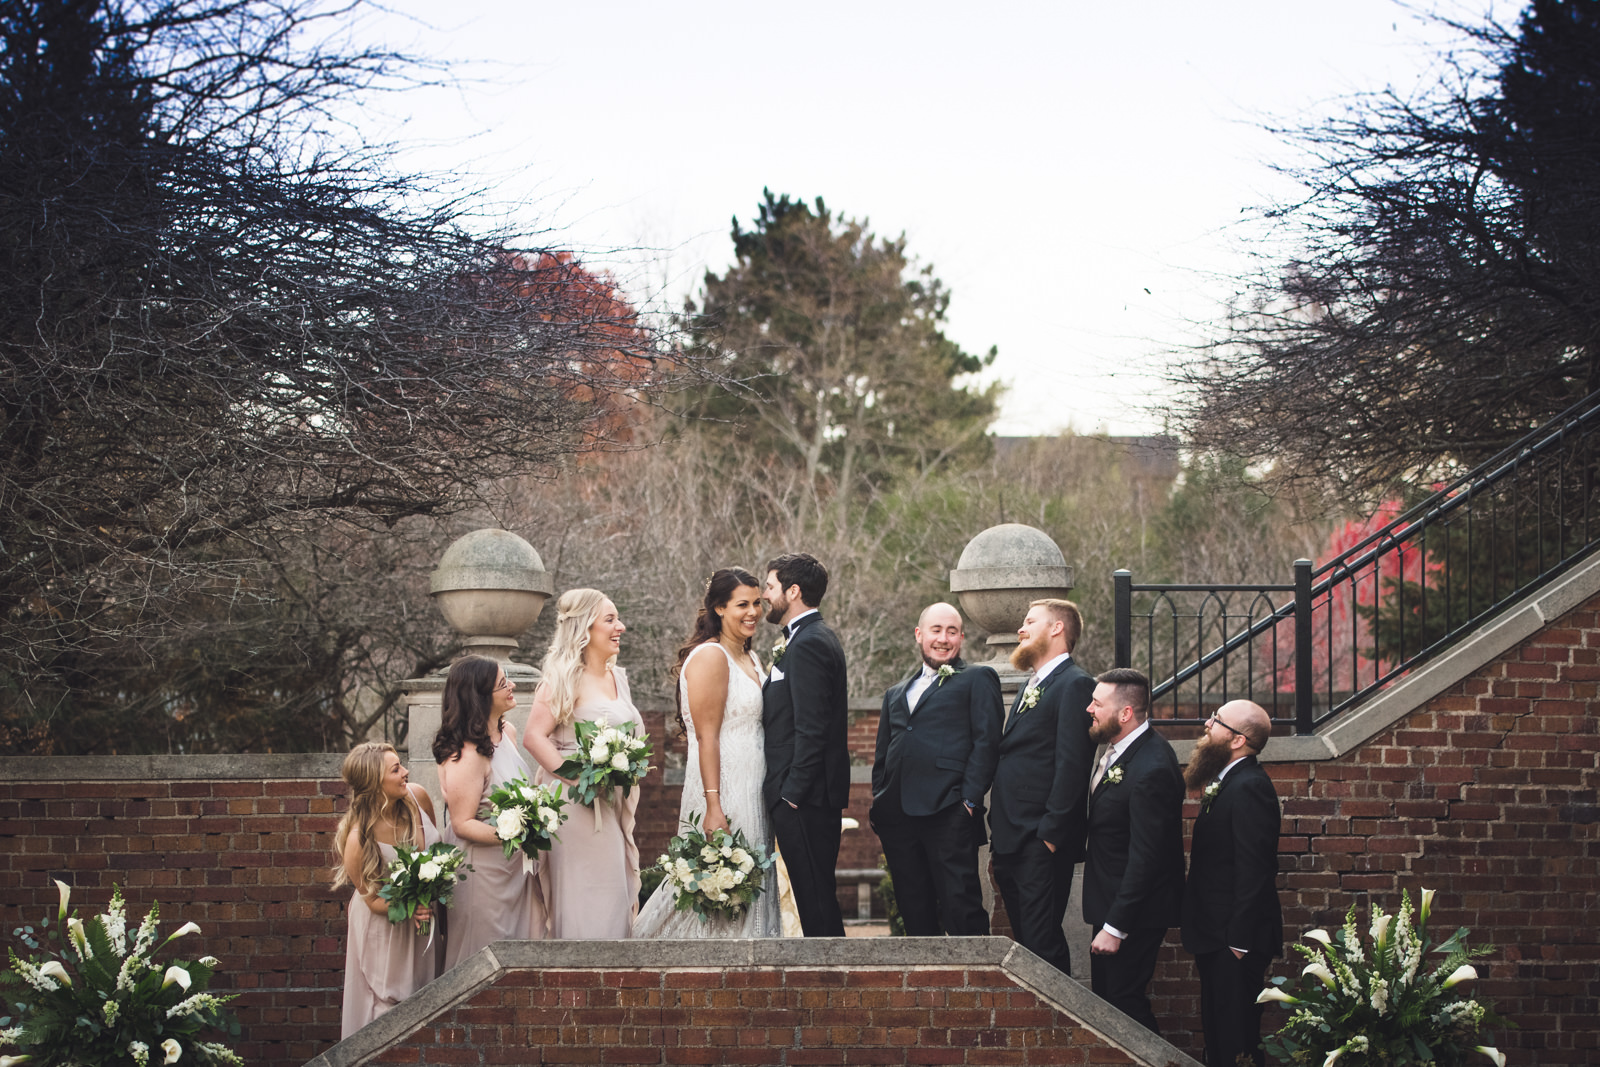 rollins-mansion-1220-wedding-photographer-des-moines-iowa-m-c.jpg